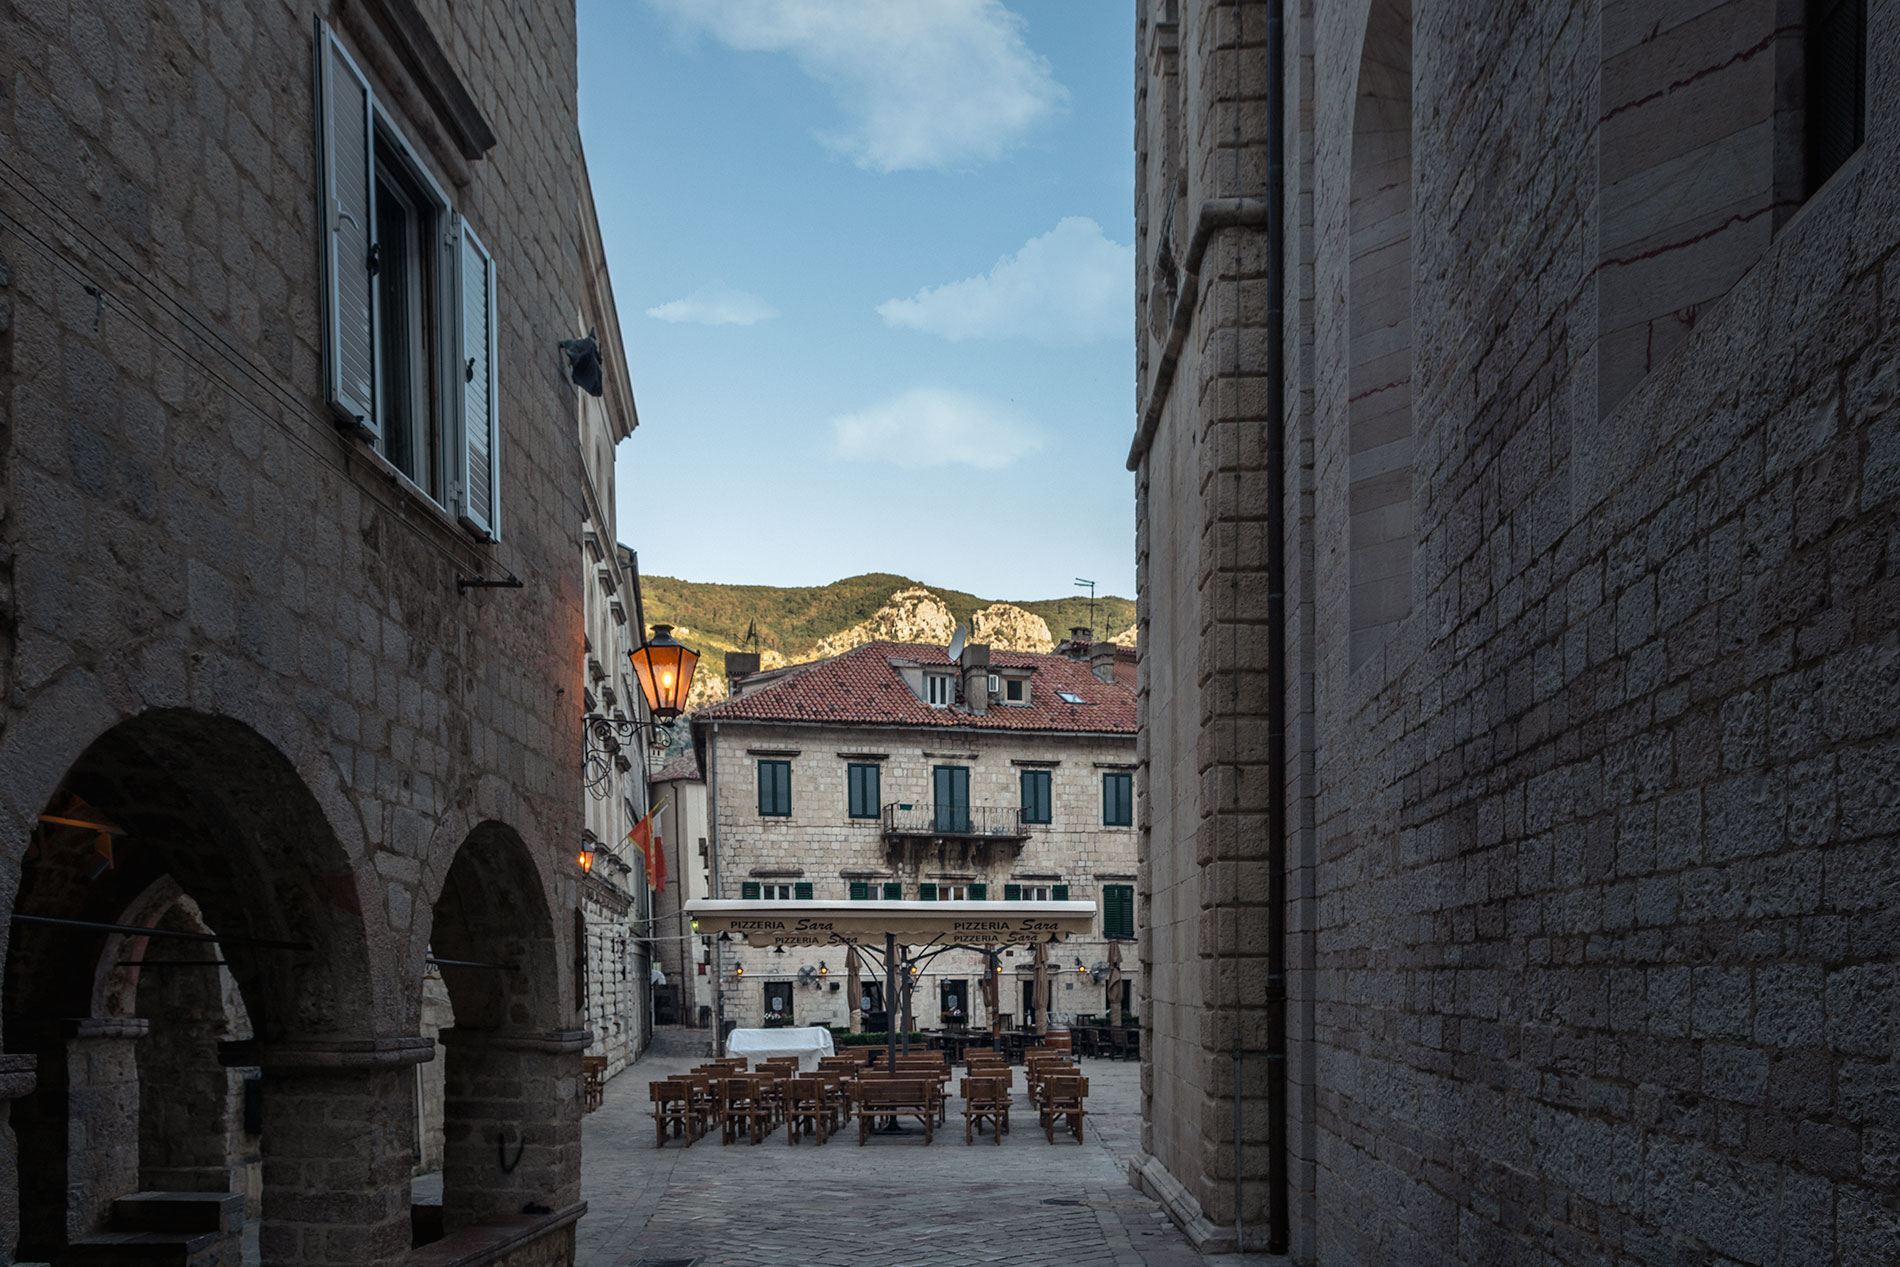 During the early morning the streets of Kotor are empty and the city seems like an open-air museum